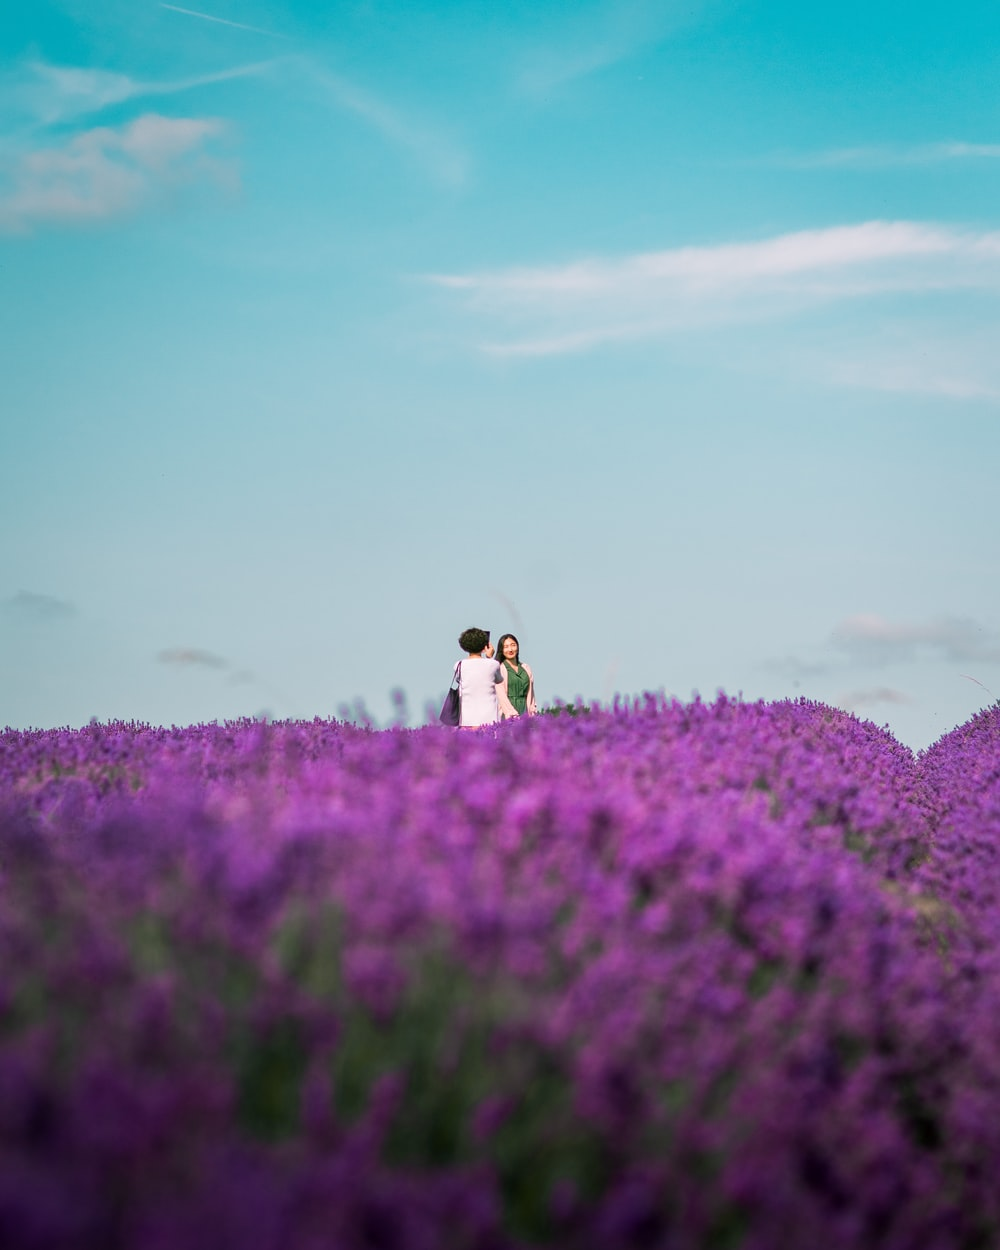 three people standing on purple flower field under blue and white skies